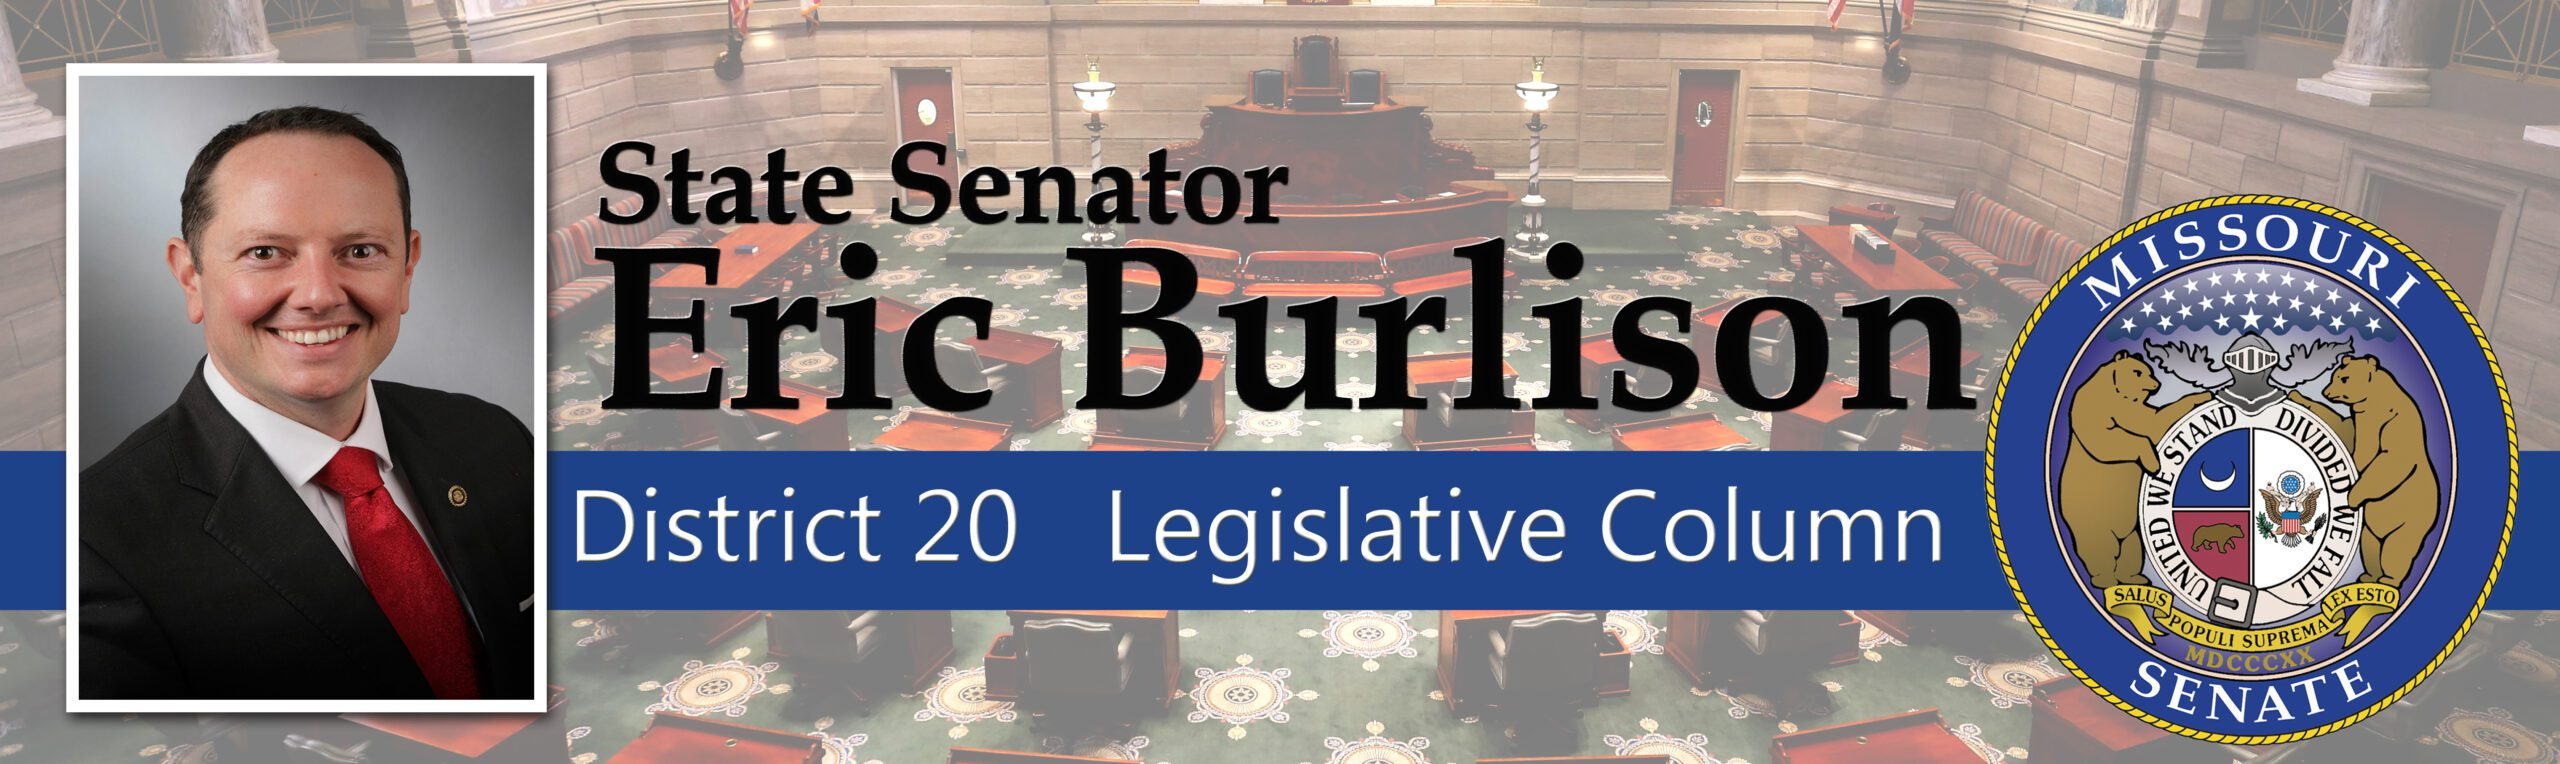 Sen. Eric Burlison's Legislative Column for Dec. 7, 2020